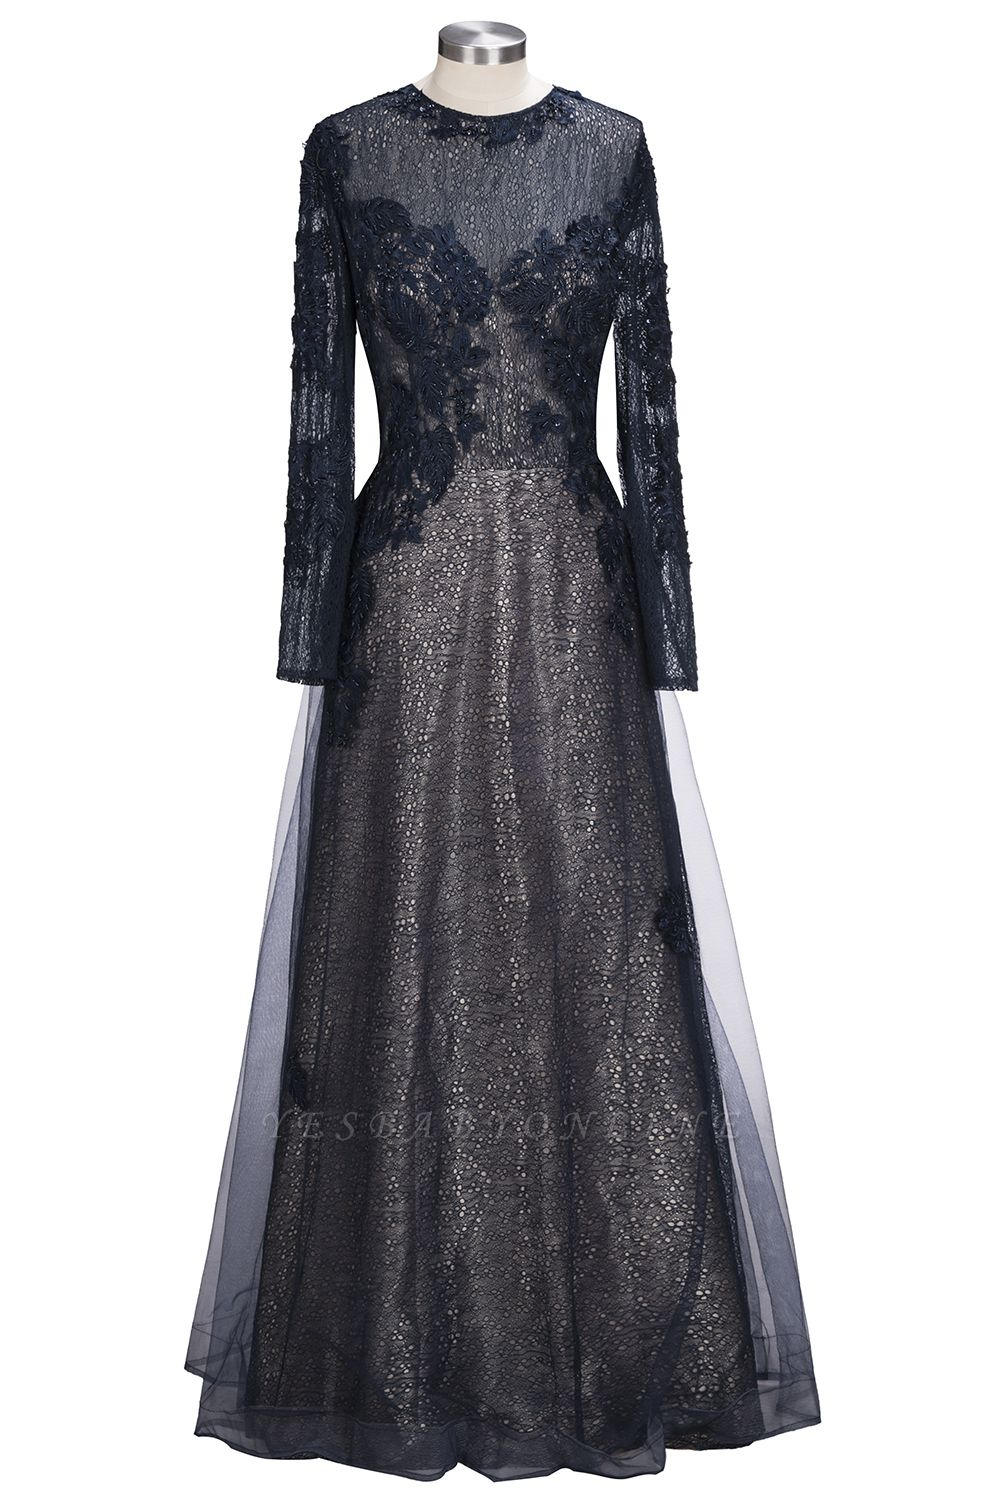 Black Scoop Long-sleeve Modern Lace-Appliques Evening Dress